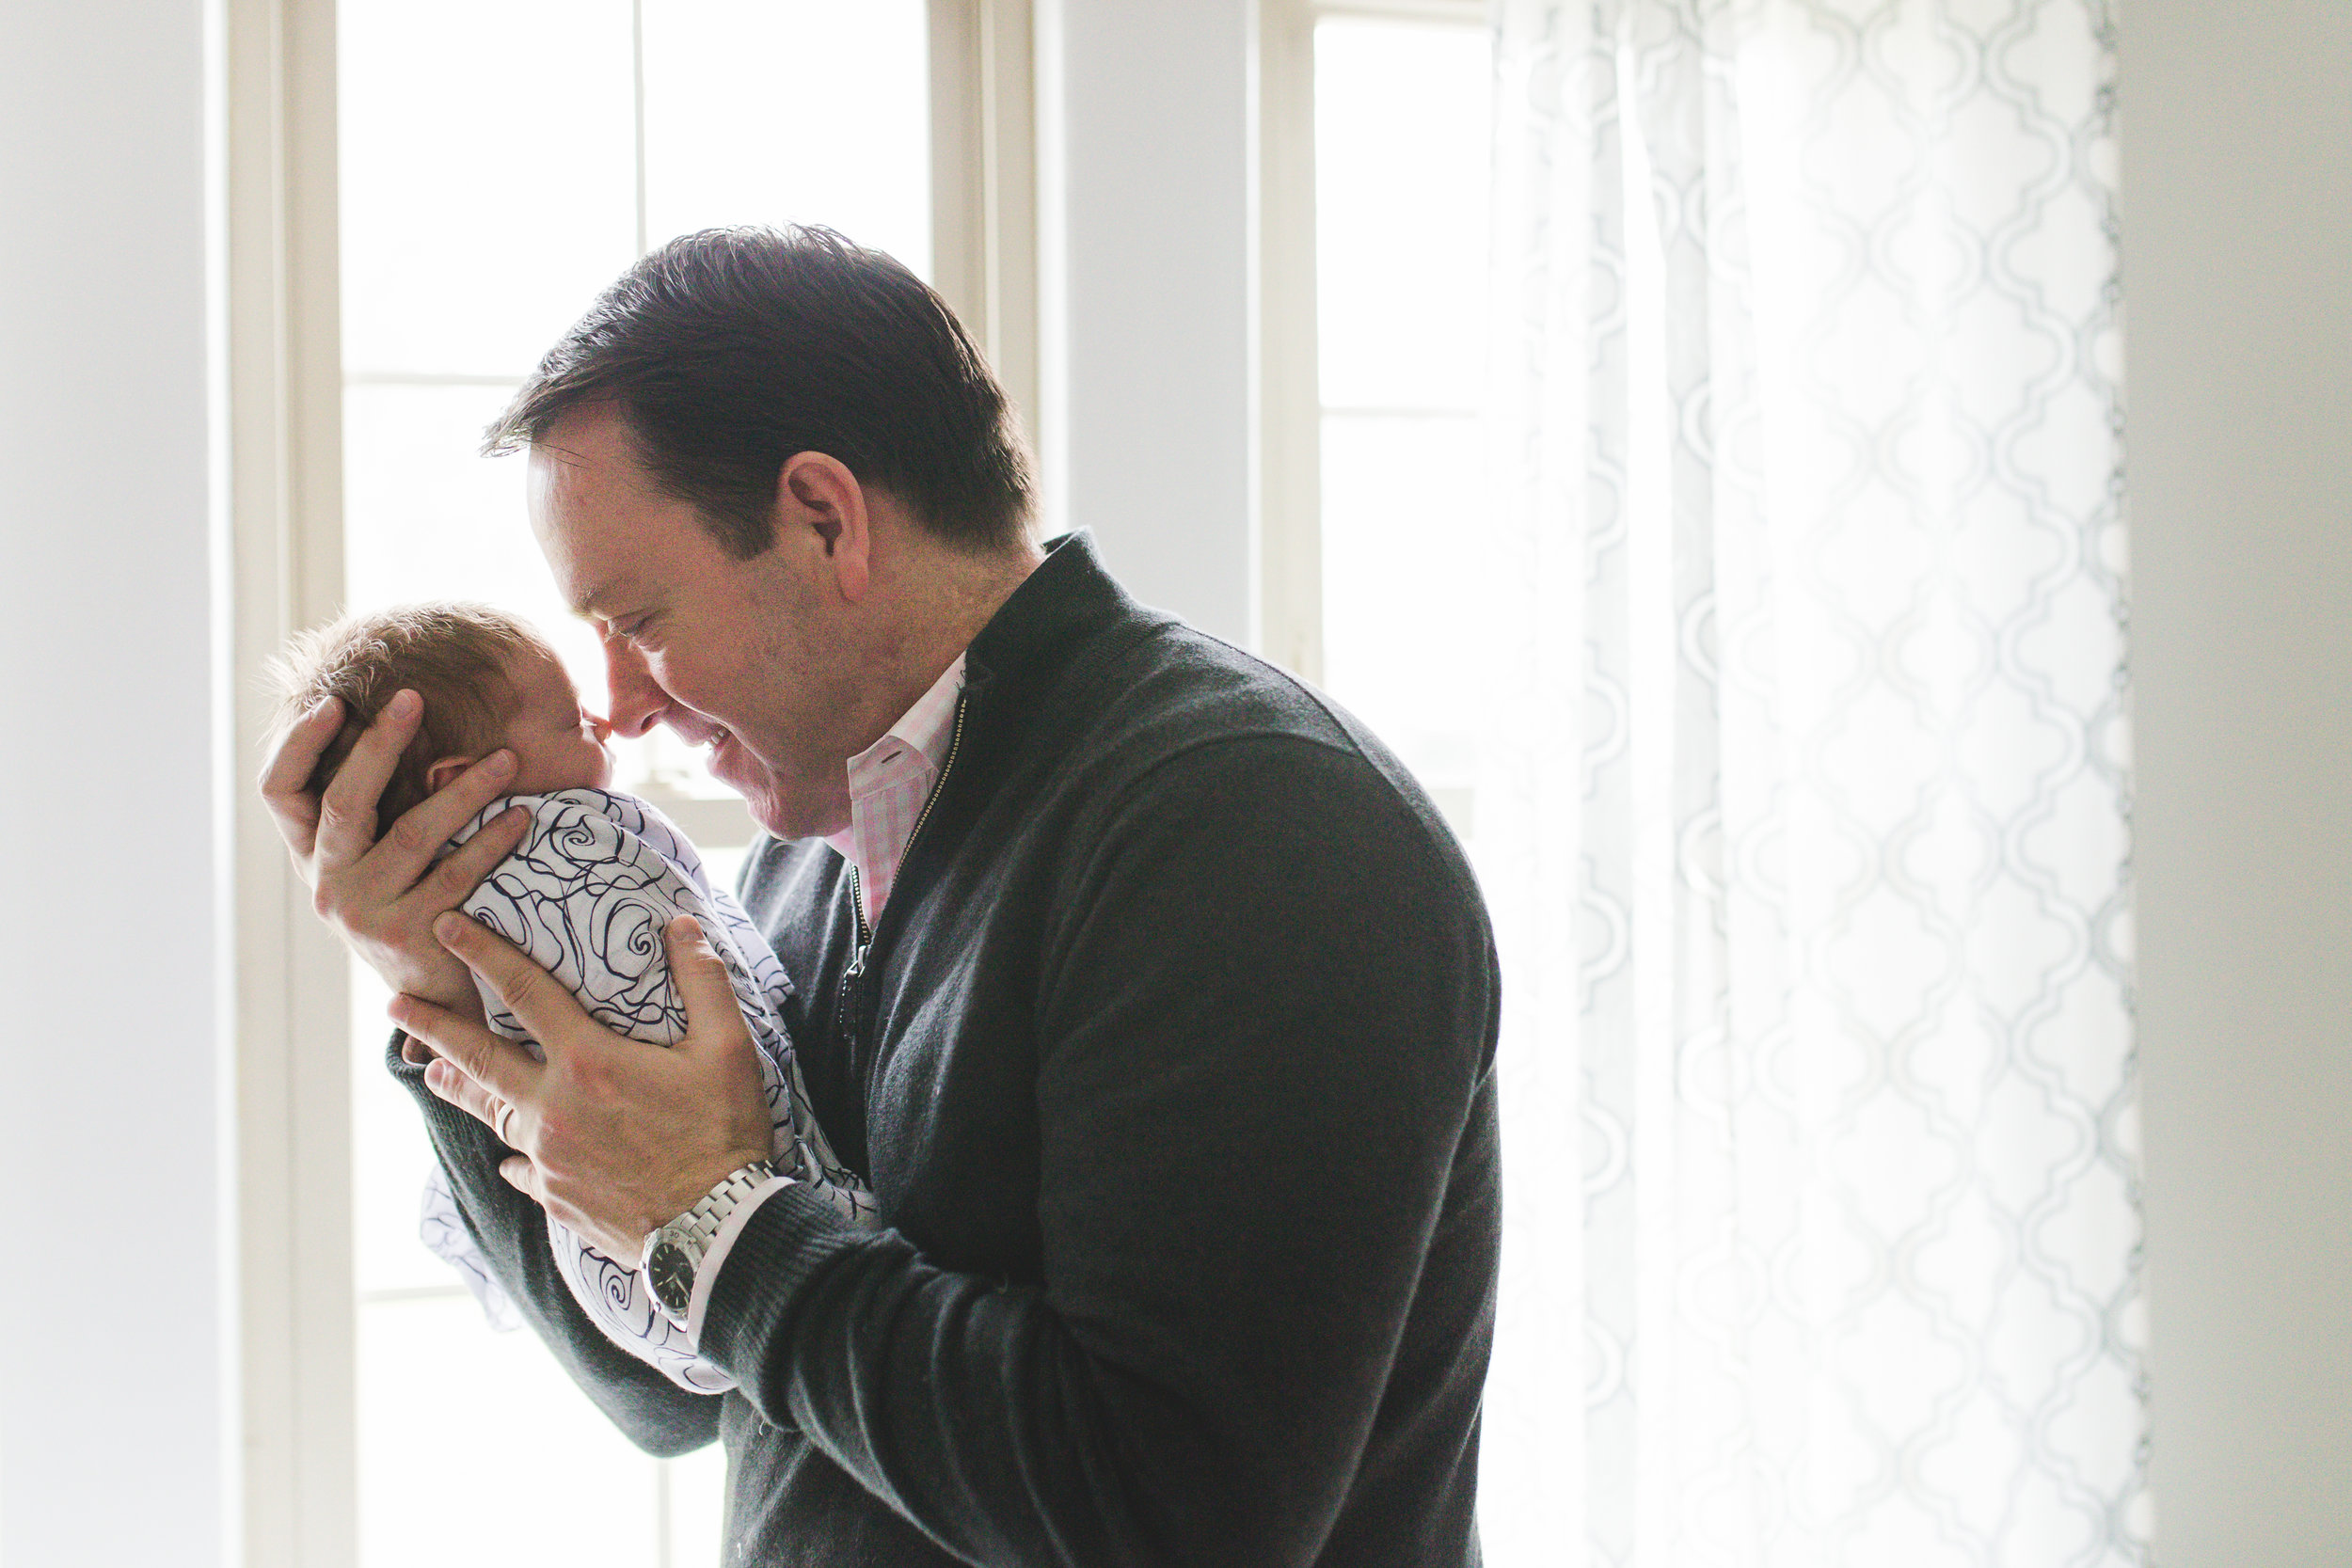 Nassau county newborn photographer who comes to home